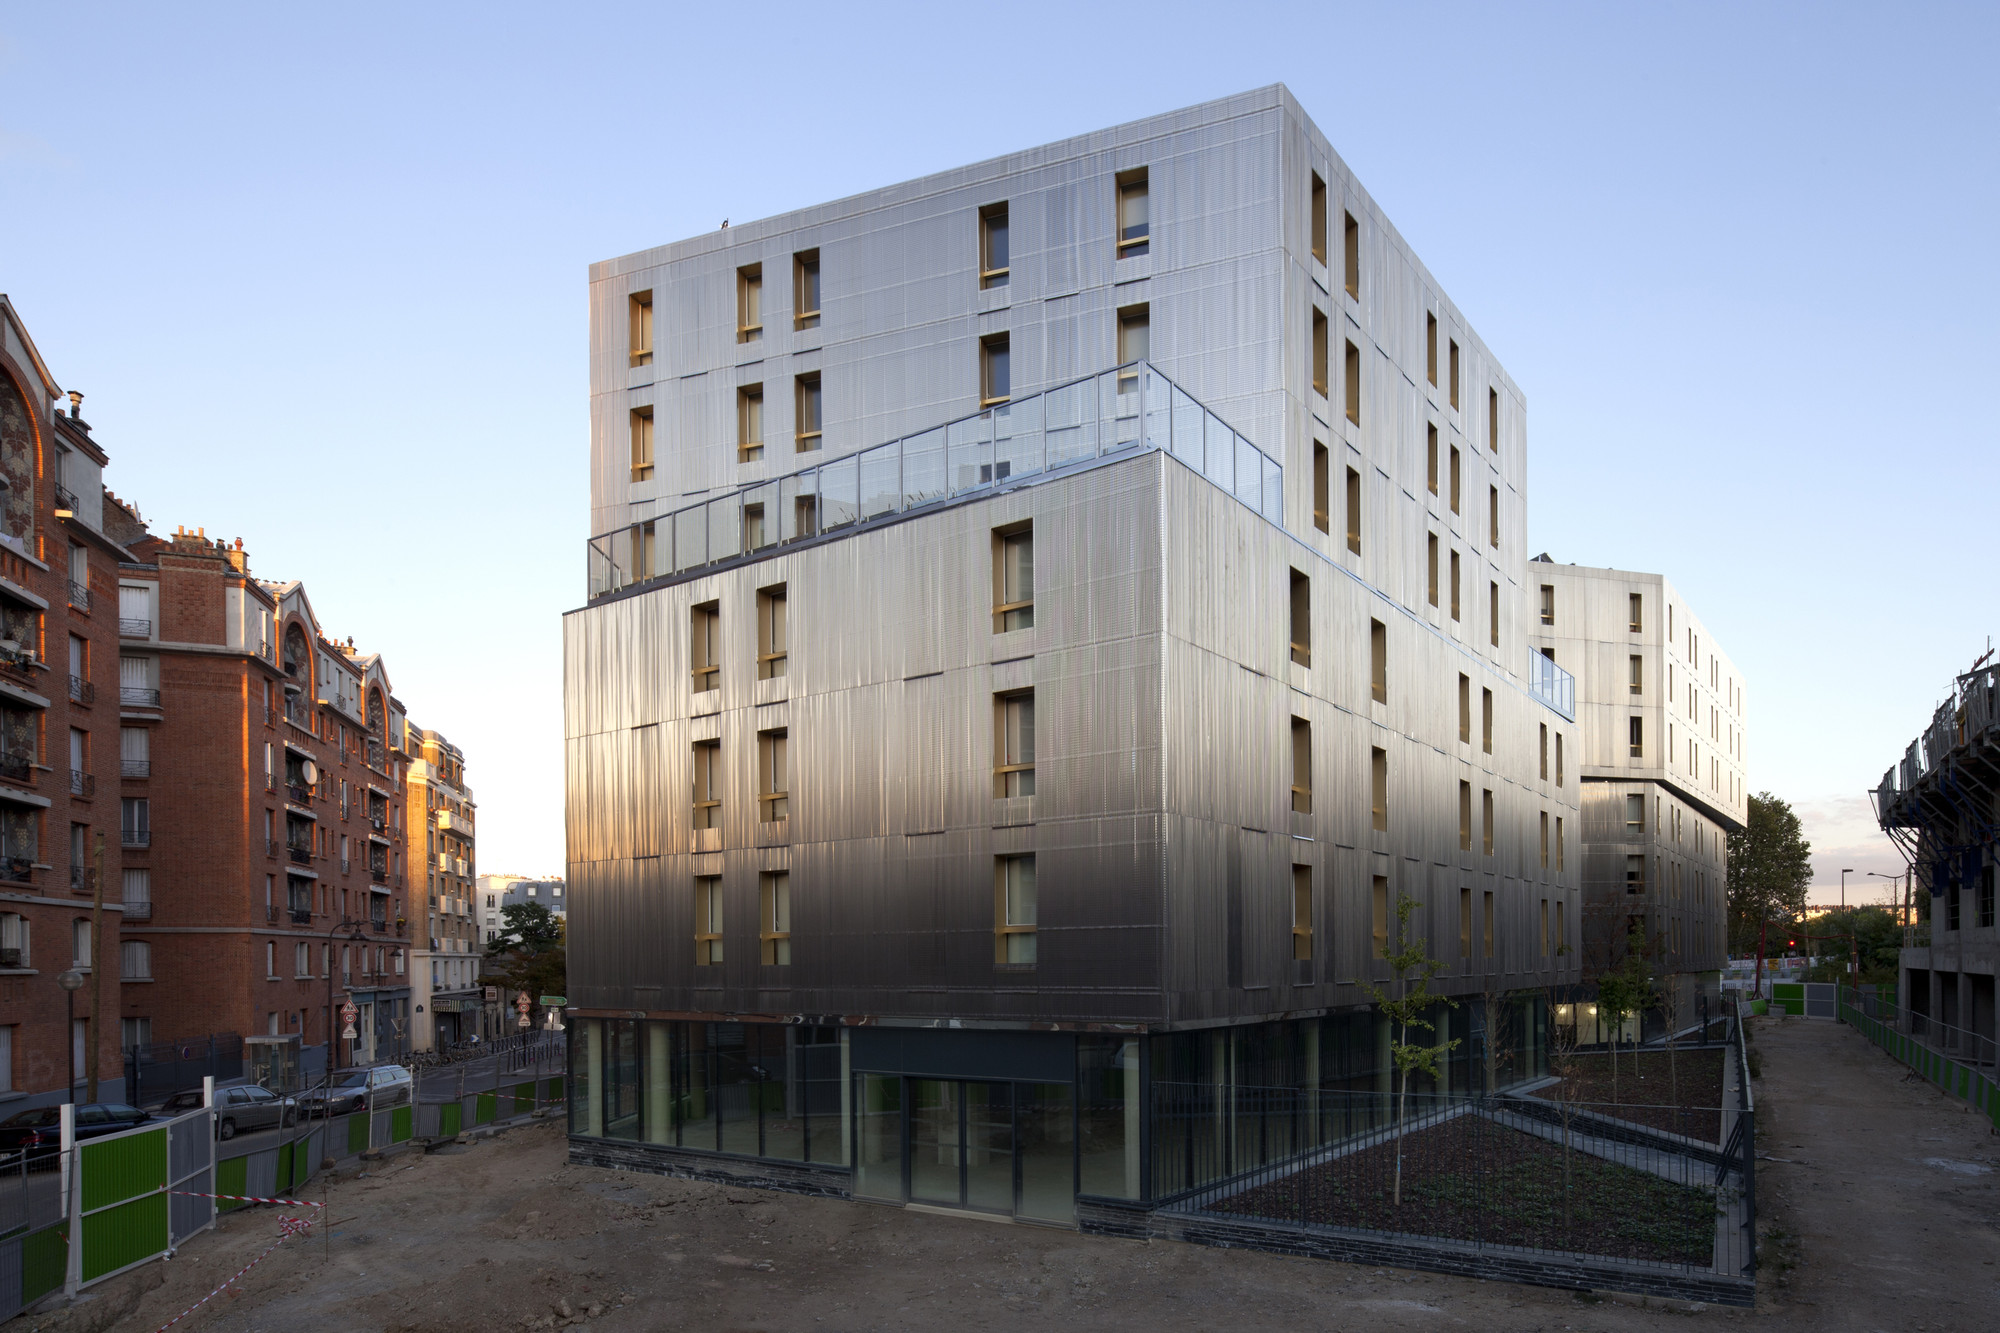 Irene Joliot Curie Residences / DATA [Architectes], Courtesy of DATA [Architectes]